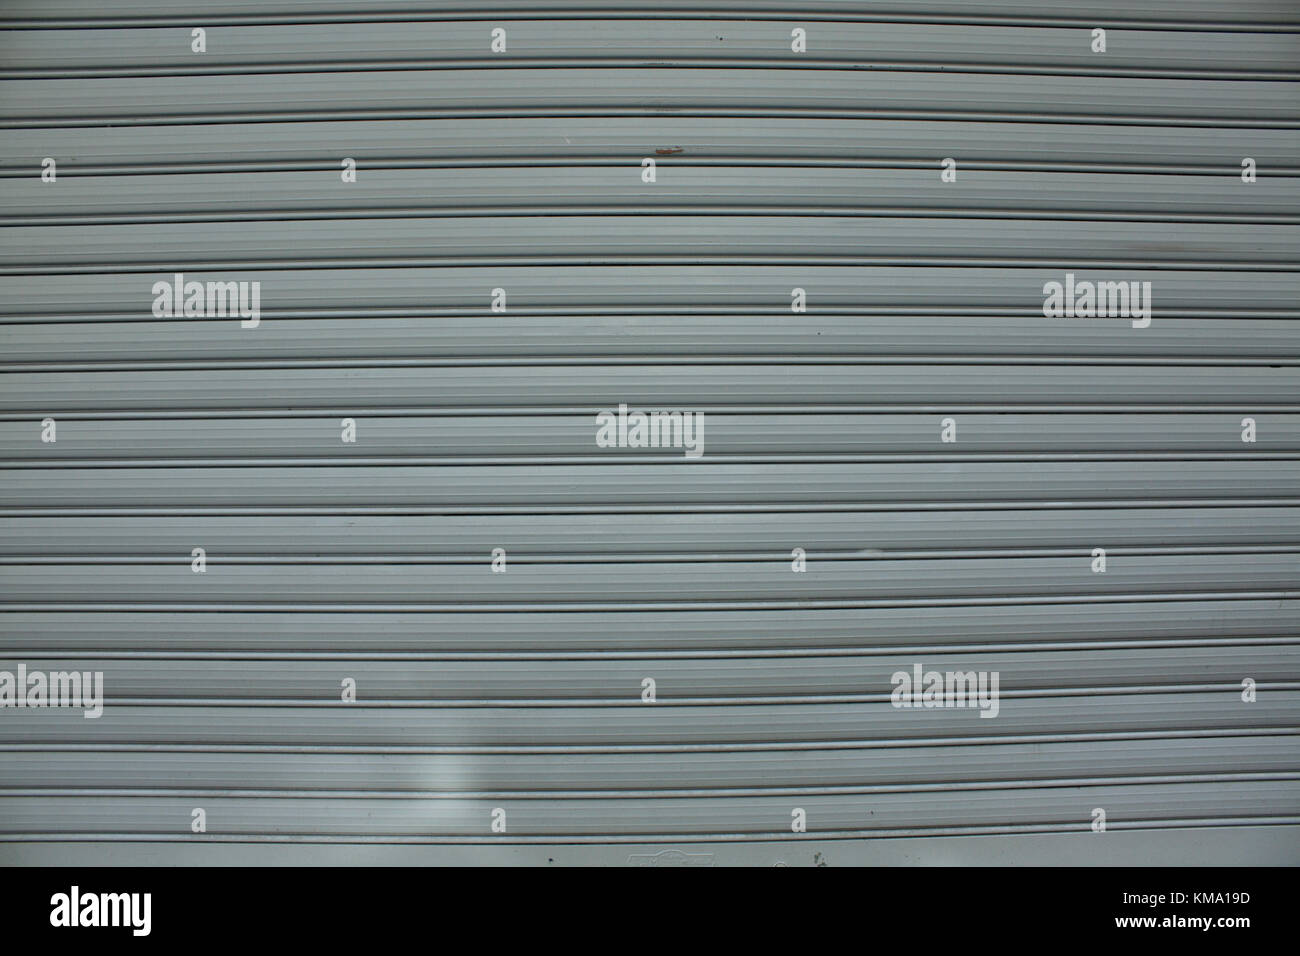 corrugated metal door stock photos corrugated metal door stock images alamy. Black Bedroom Furniture Sets. Home Design Ideas